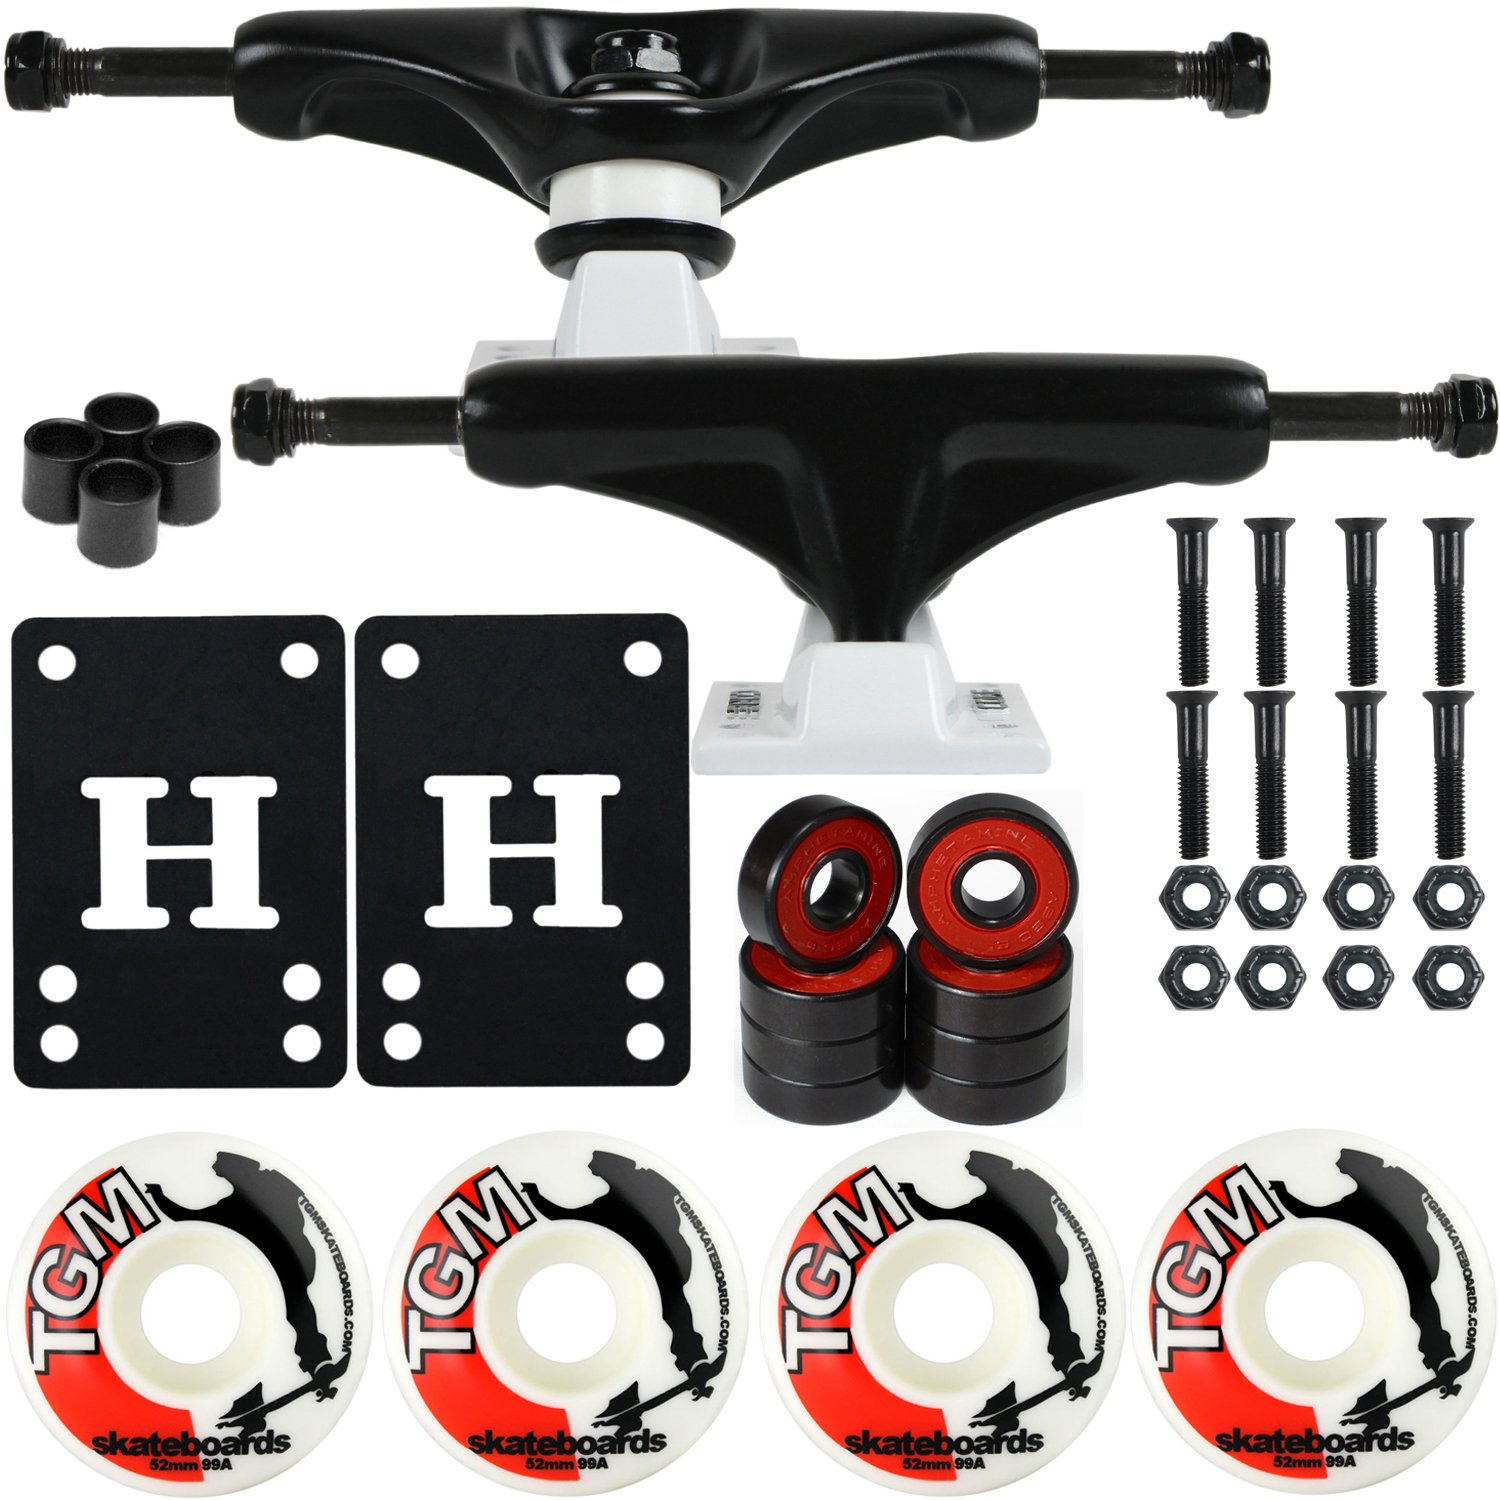 CORE Skateboard Package 5.0'' Trucks 52mm with White Wheels + Components (Black Hanger/White Base) by CORE